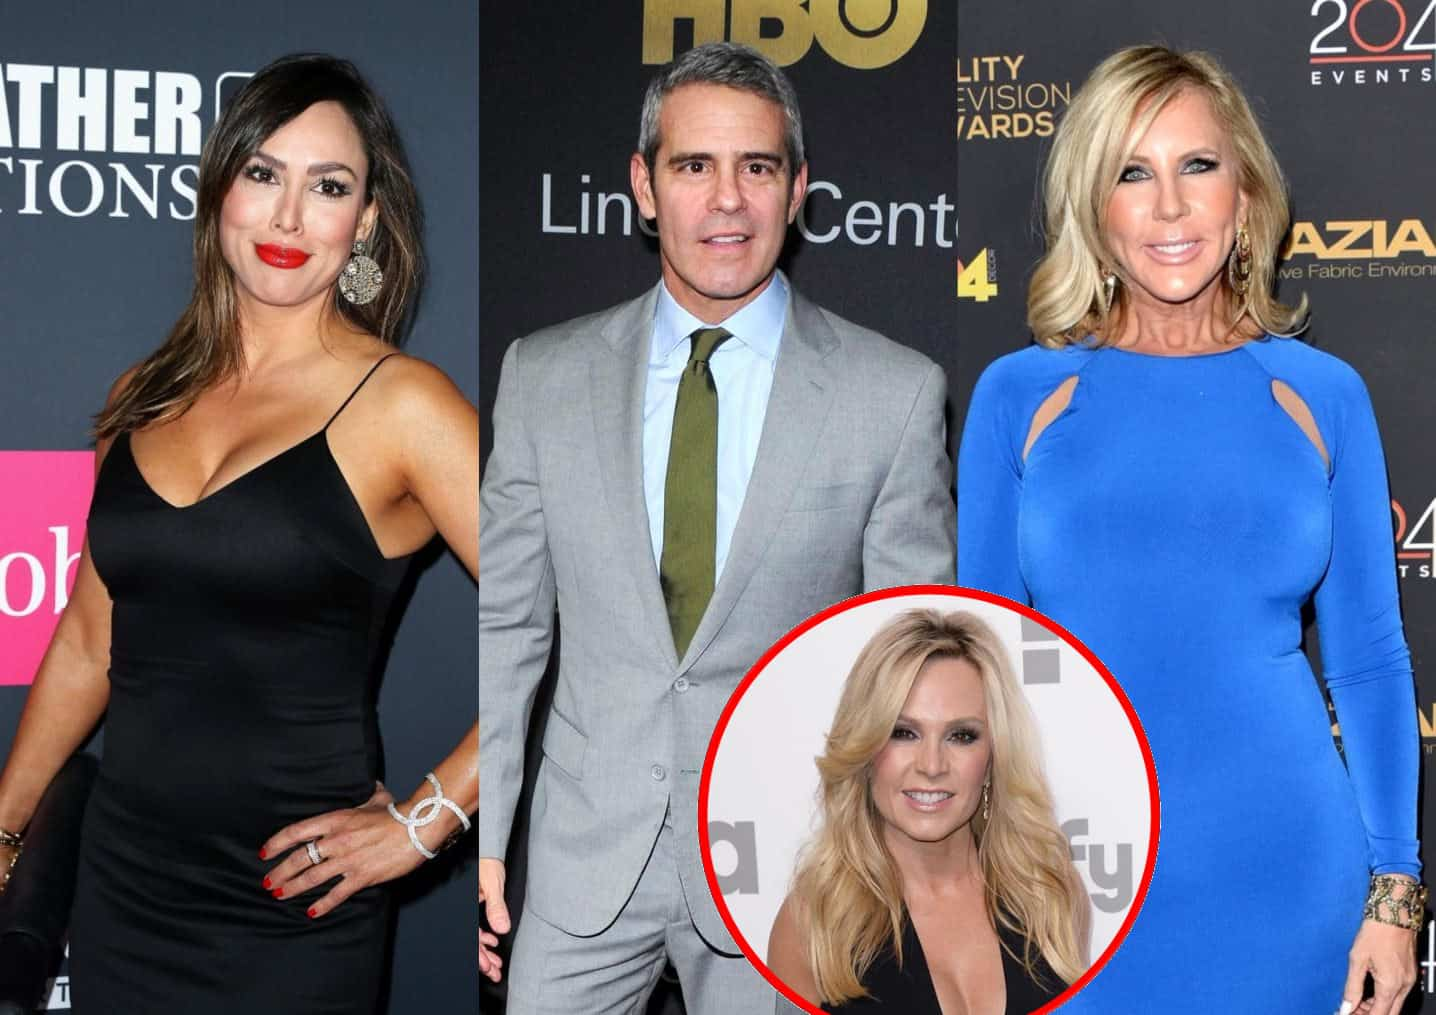 Kelly Dodd and Andy Cohen React to Vicki Gunvalson's RHOC Demotion, Plus What is Tamra Judge Saying?